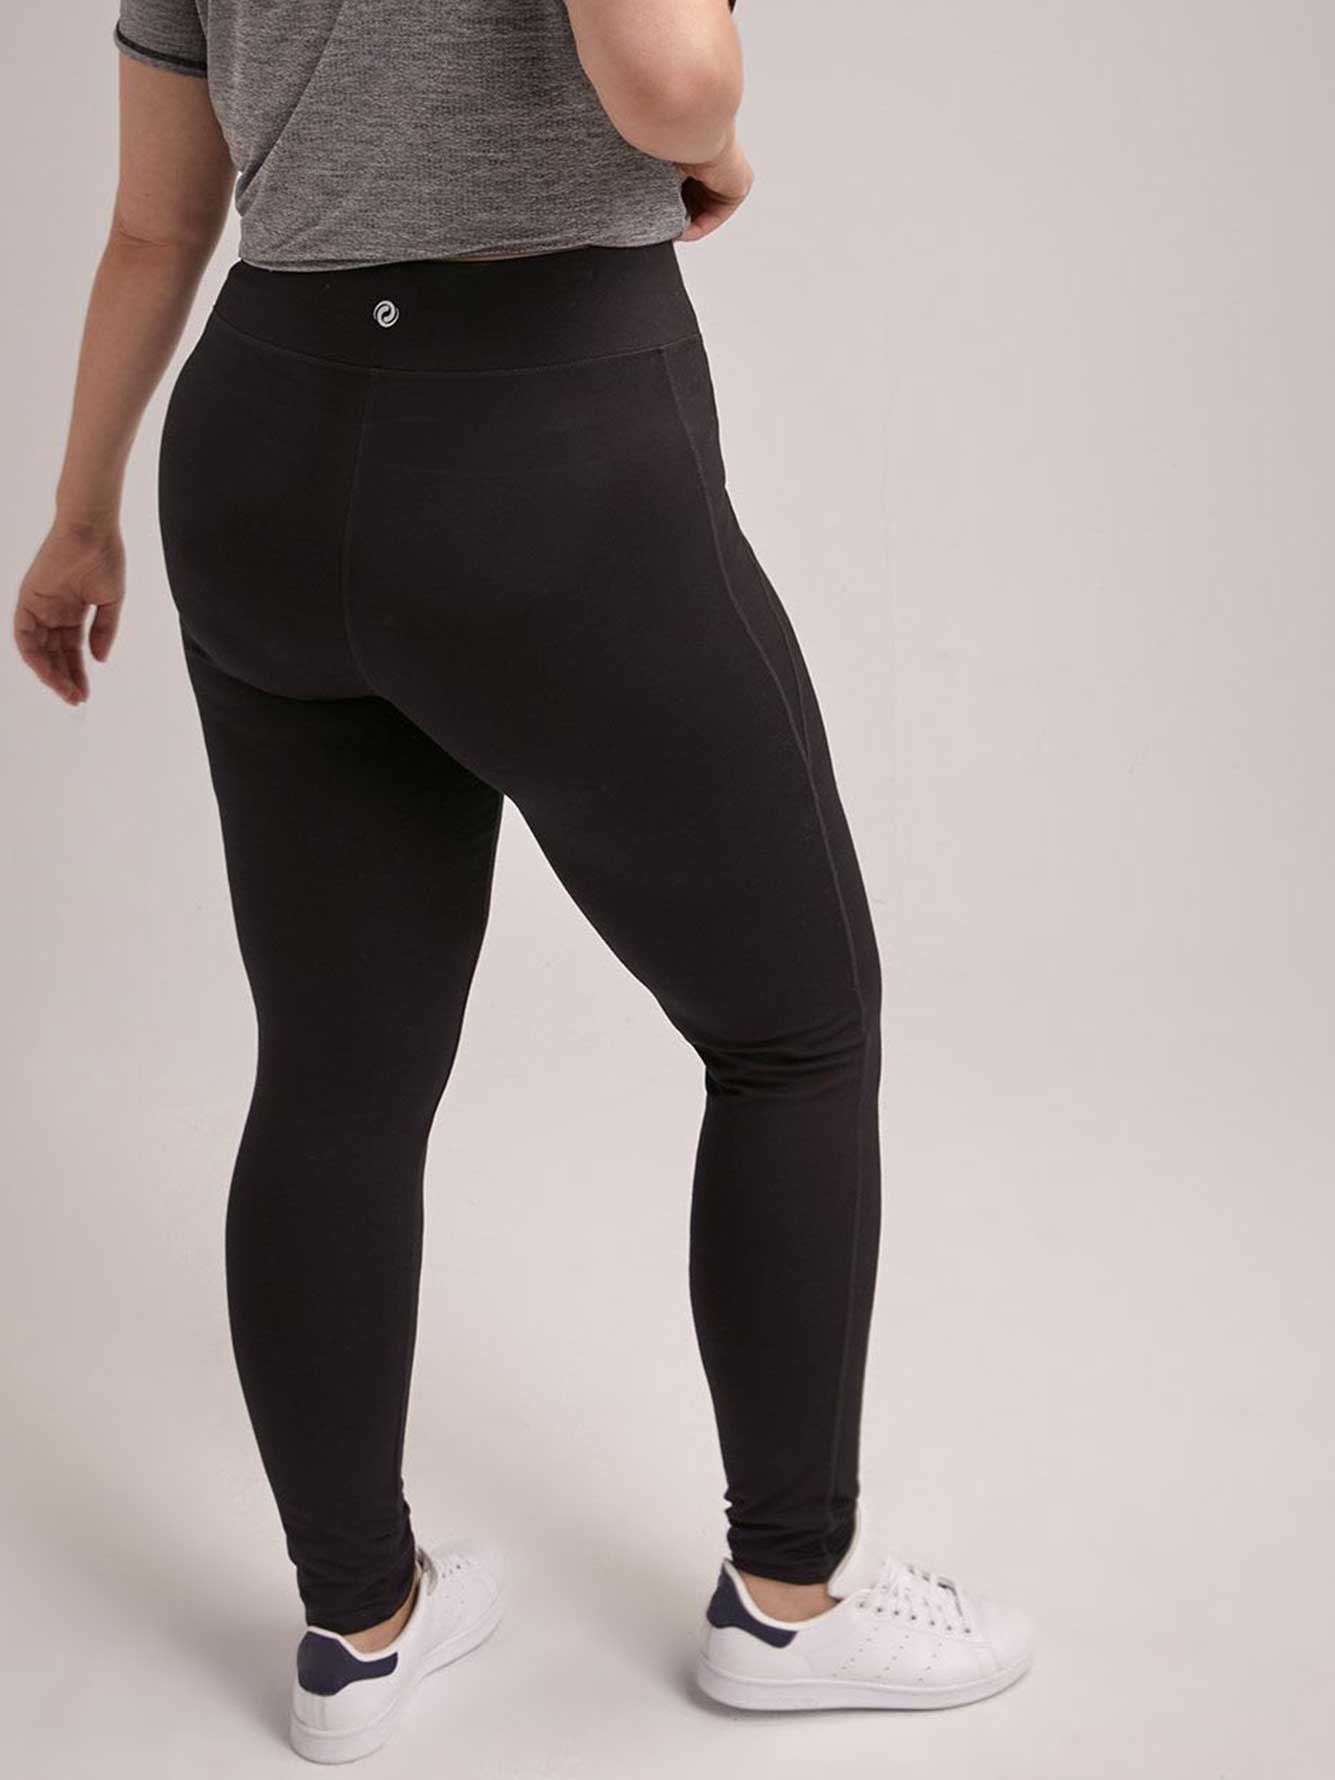 ONLINE ONLY - Tall Plus-Size Basic Legging - ActiveZone